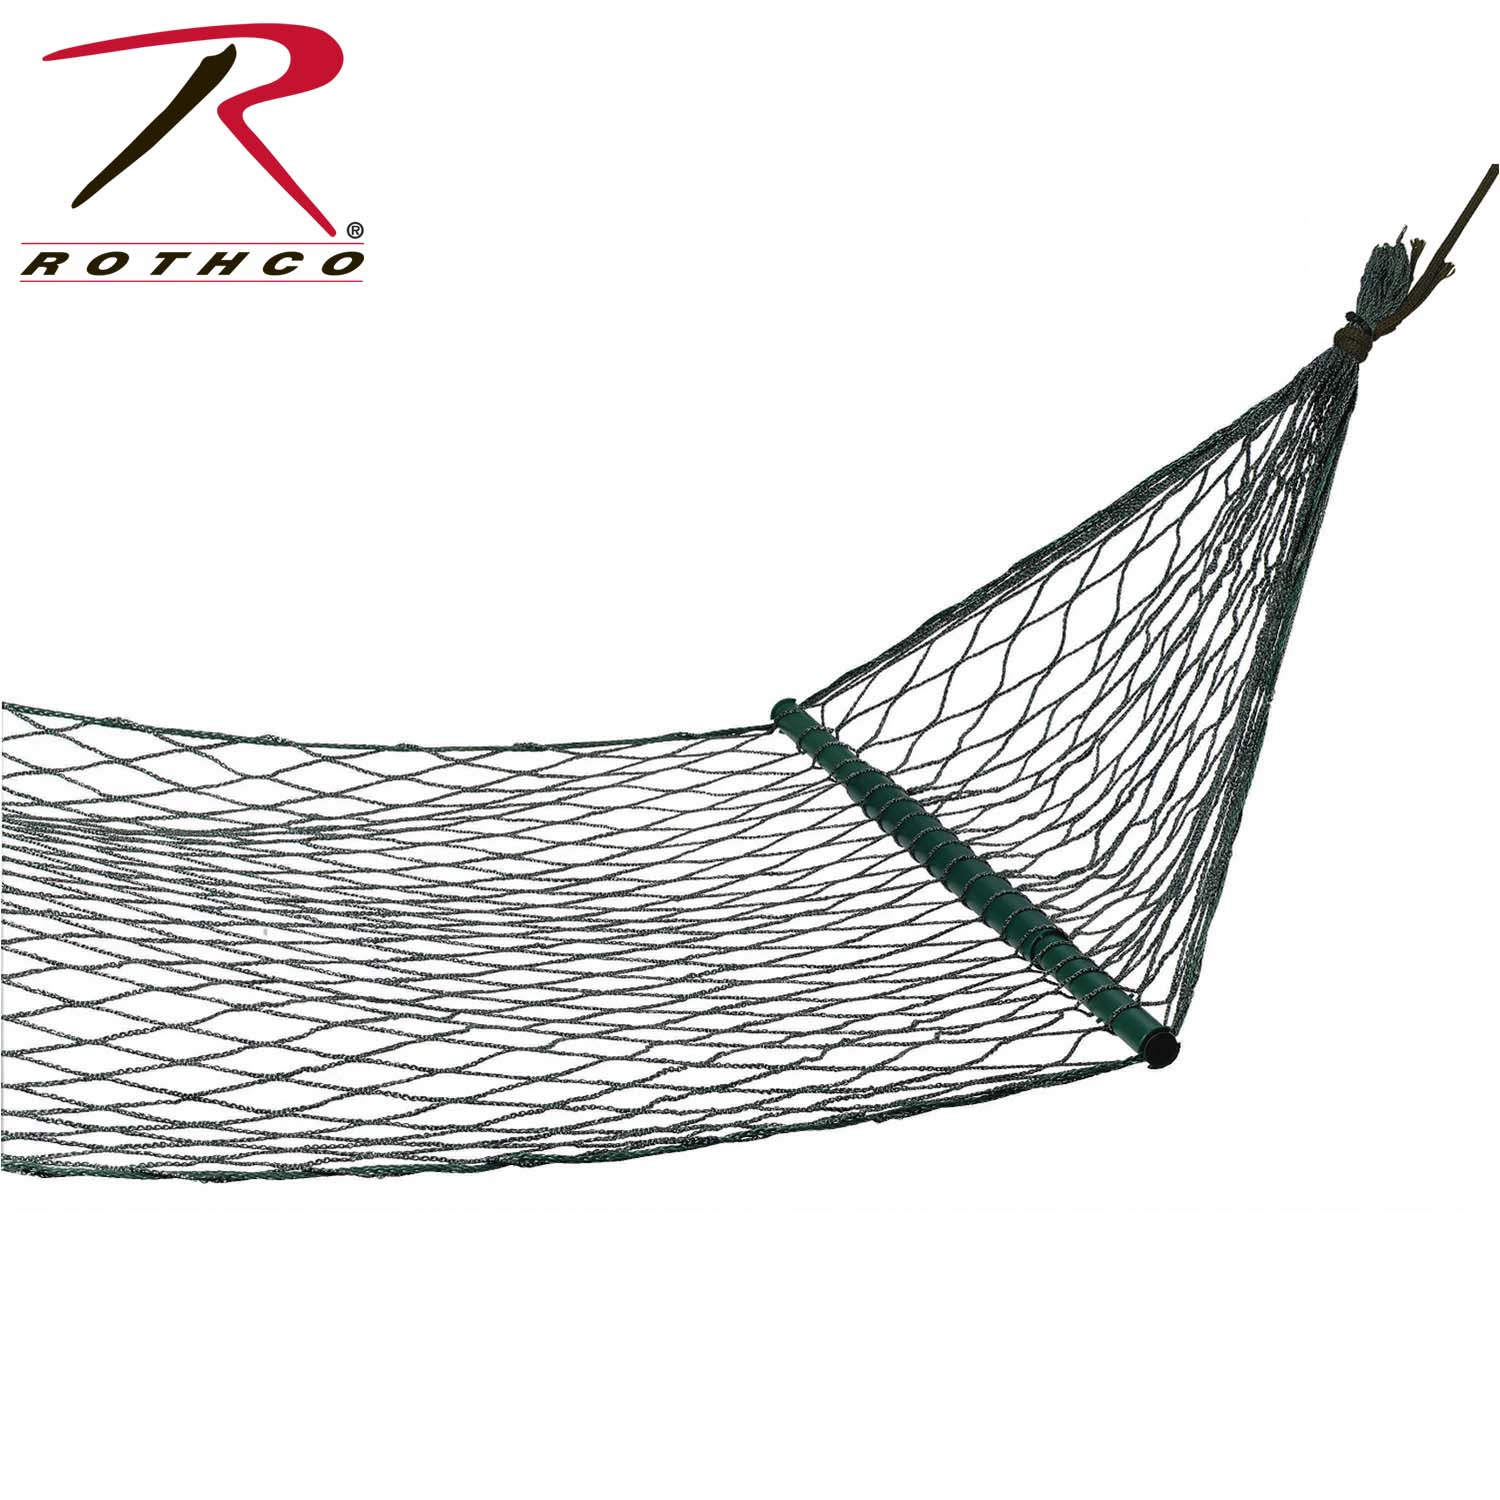 eno beautiful small with daybed amazon bedroom floating hammock along bedrooms description round wa sleeping also bed hammocks witching b spaces am indoor hanging advantages for superb